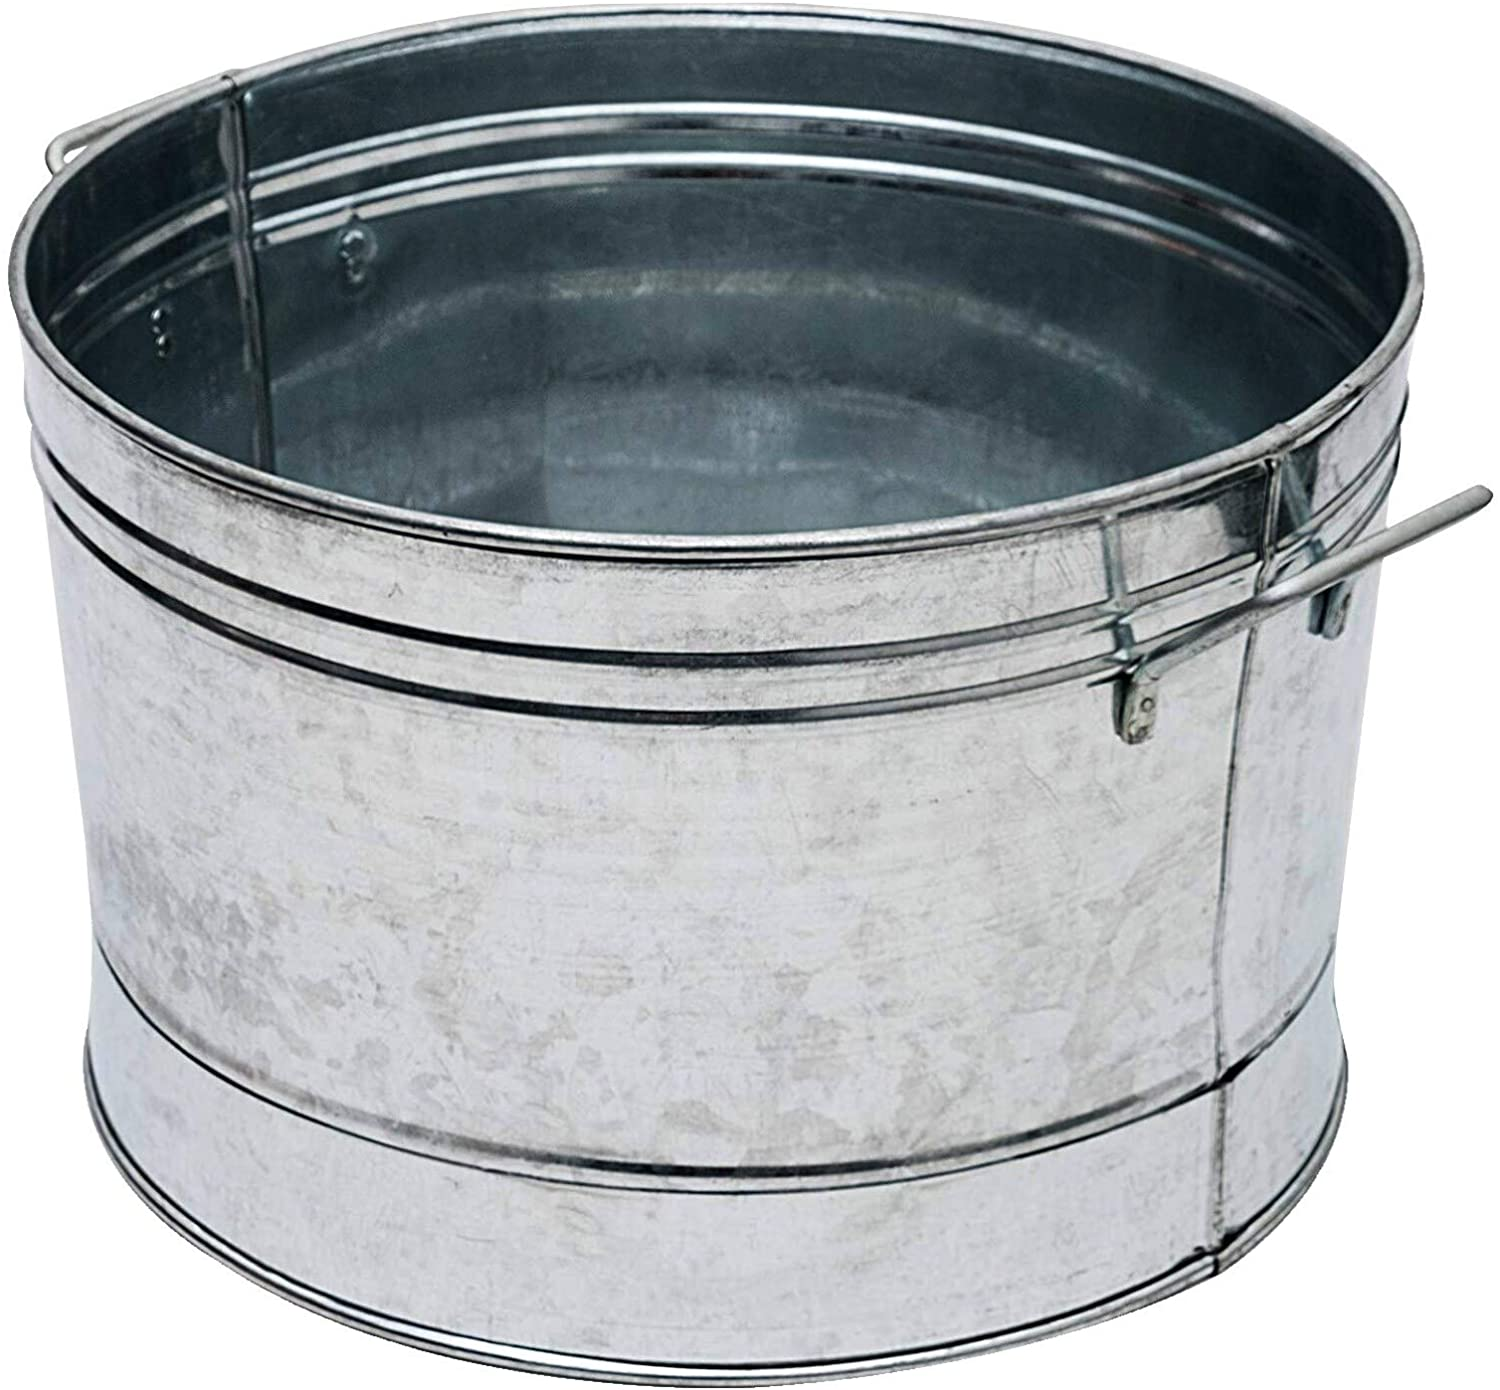 MISC Round Galvanized Steel Tub with Side Handles and Embossed Design Silver Handle